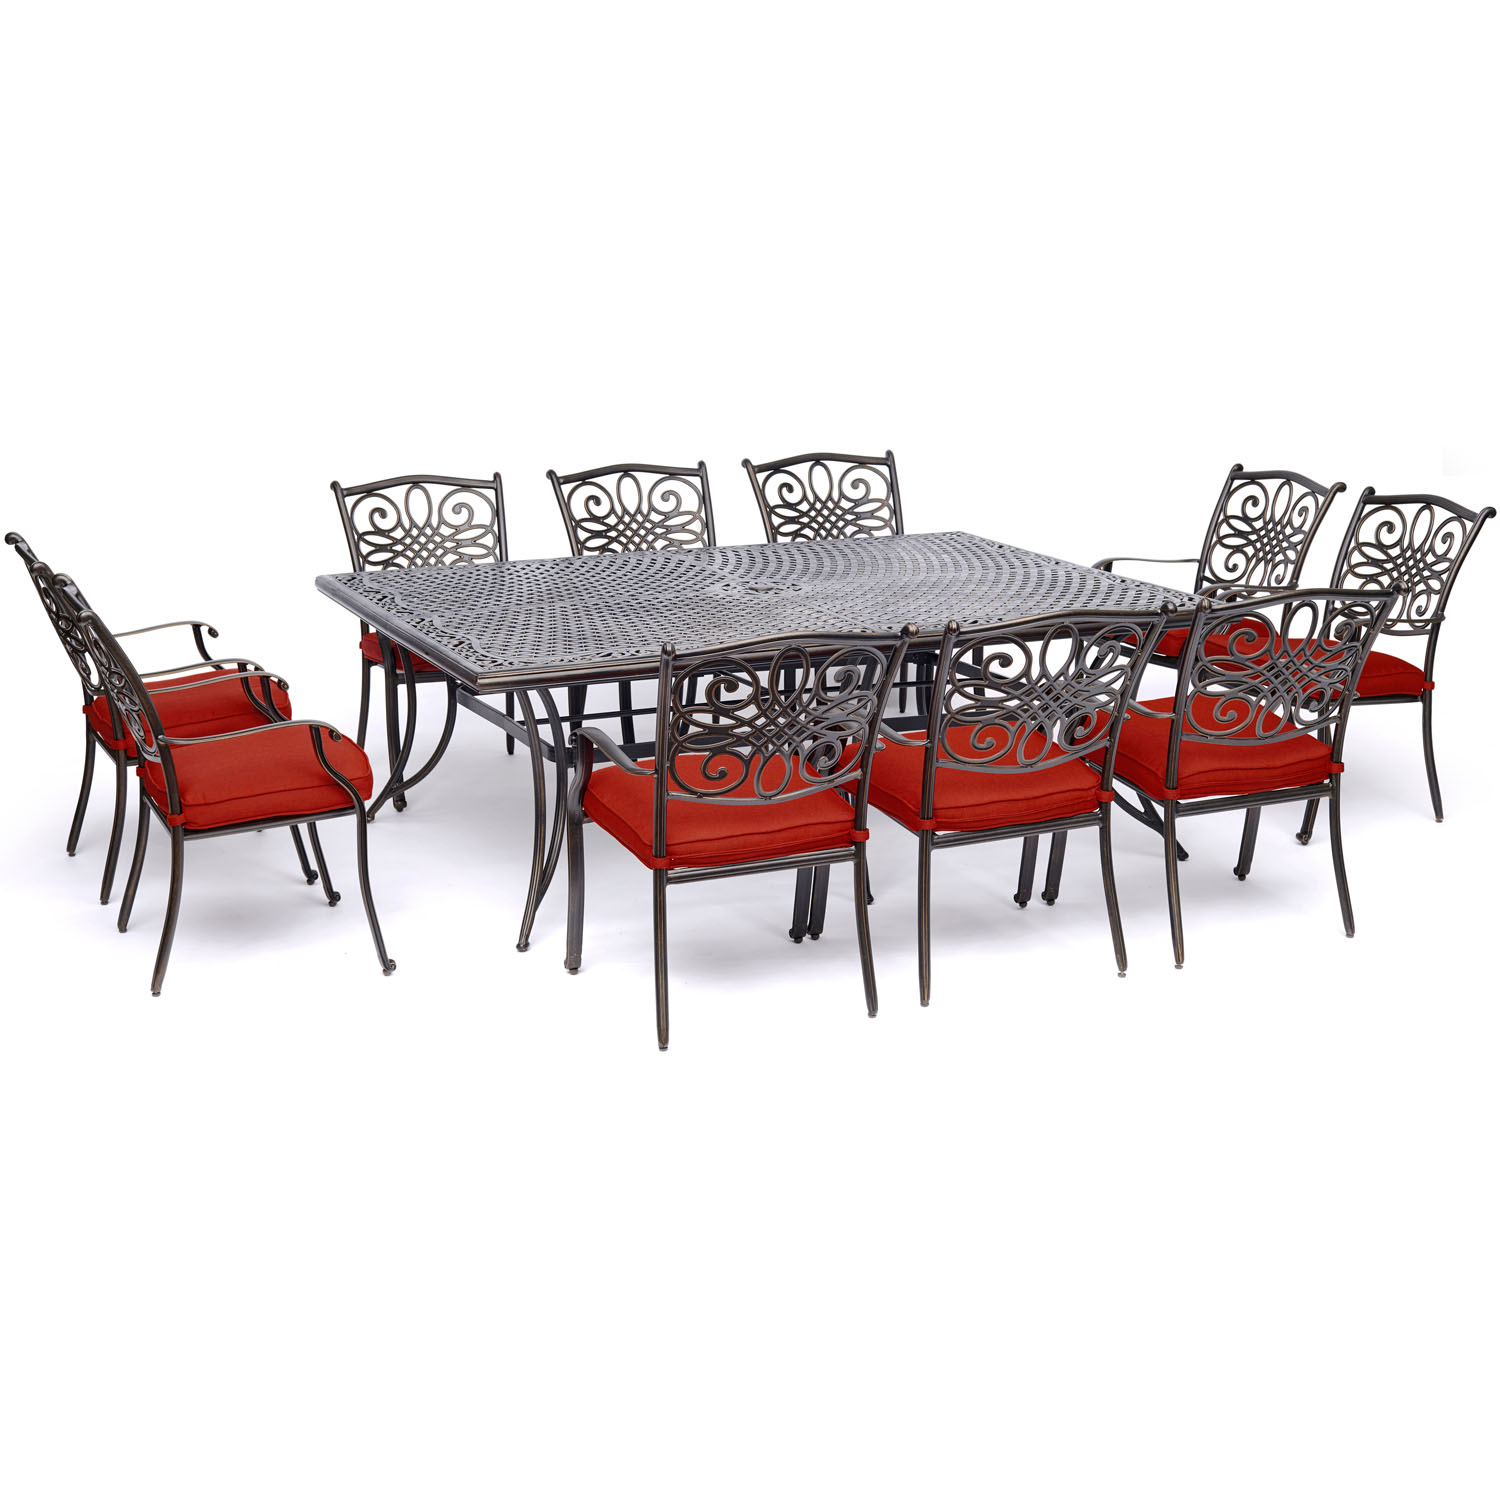 Hanover Traditions 11-Piece Outdoor Dining Set with Cast-Top Table and 10 Stationary Chairs